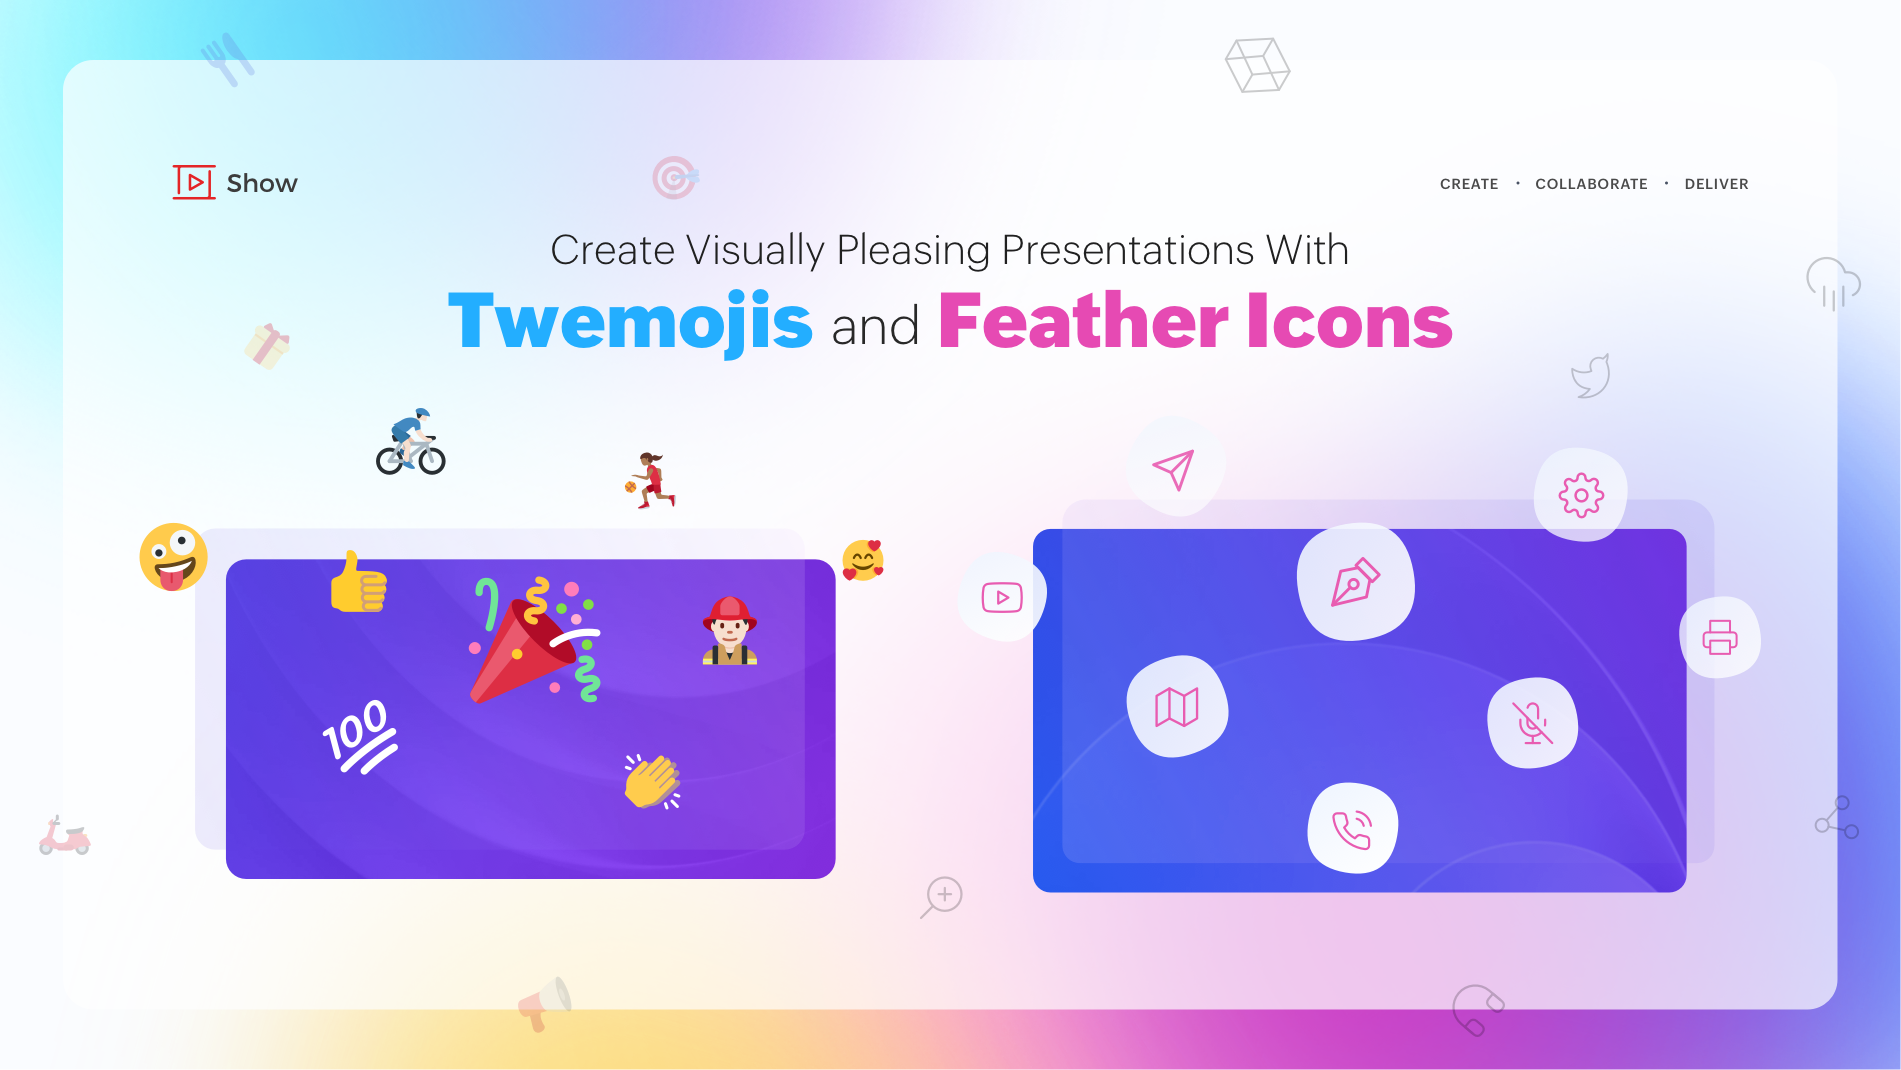 Create visually pleasing presentations with Twemojis and Feather Icons